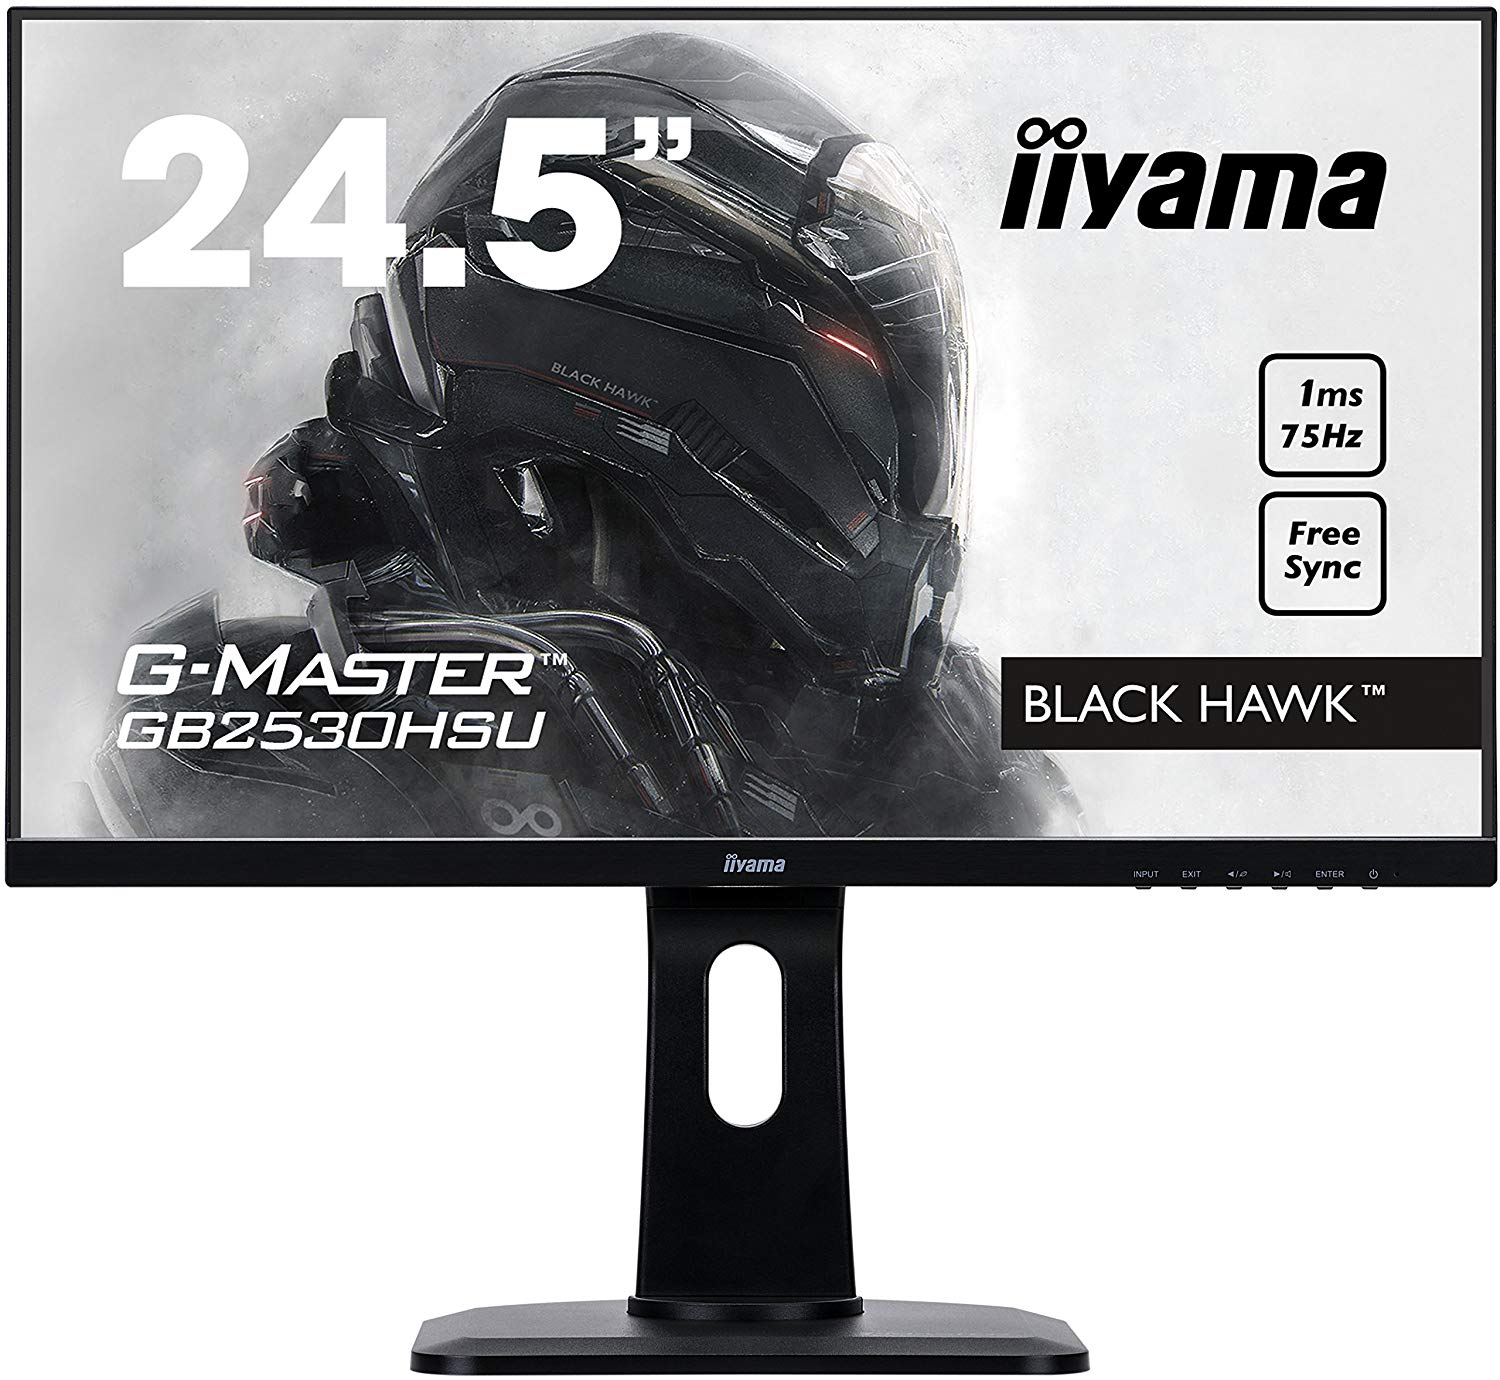 24.5in Monitor Full HD Speakers VGA HDMI